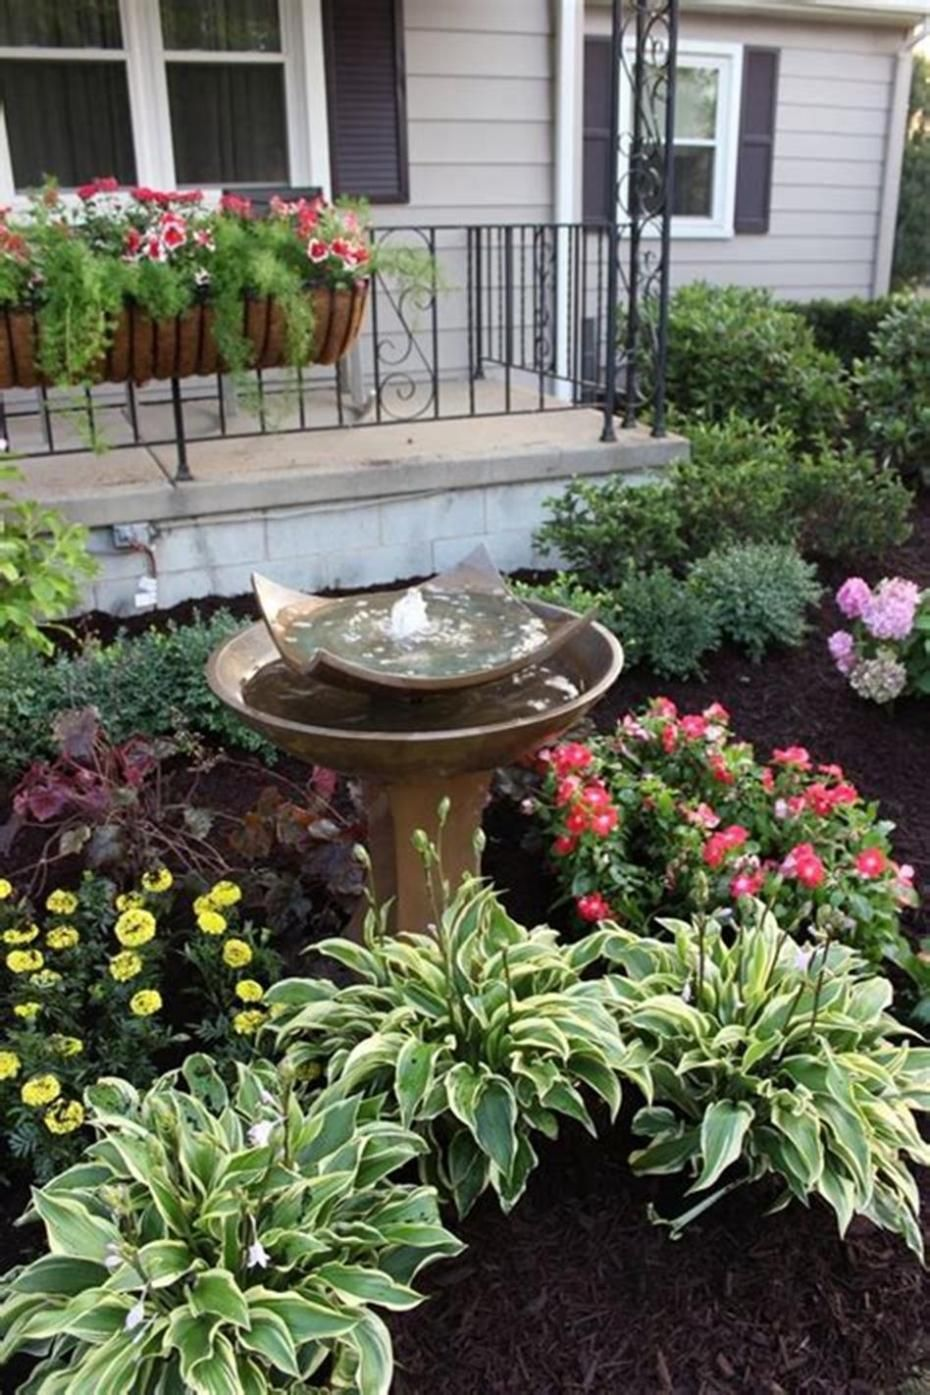 45 Best And Cheap Simple Front Yard Landscaping Ideas Homenthusiastic Front Yard Landscaping Design Small Front Yard Landscaping Cheap Landscaping Ideas